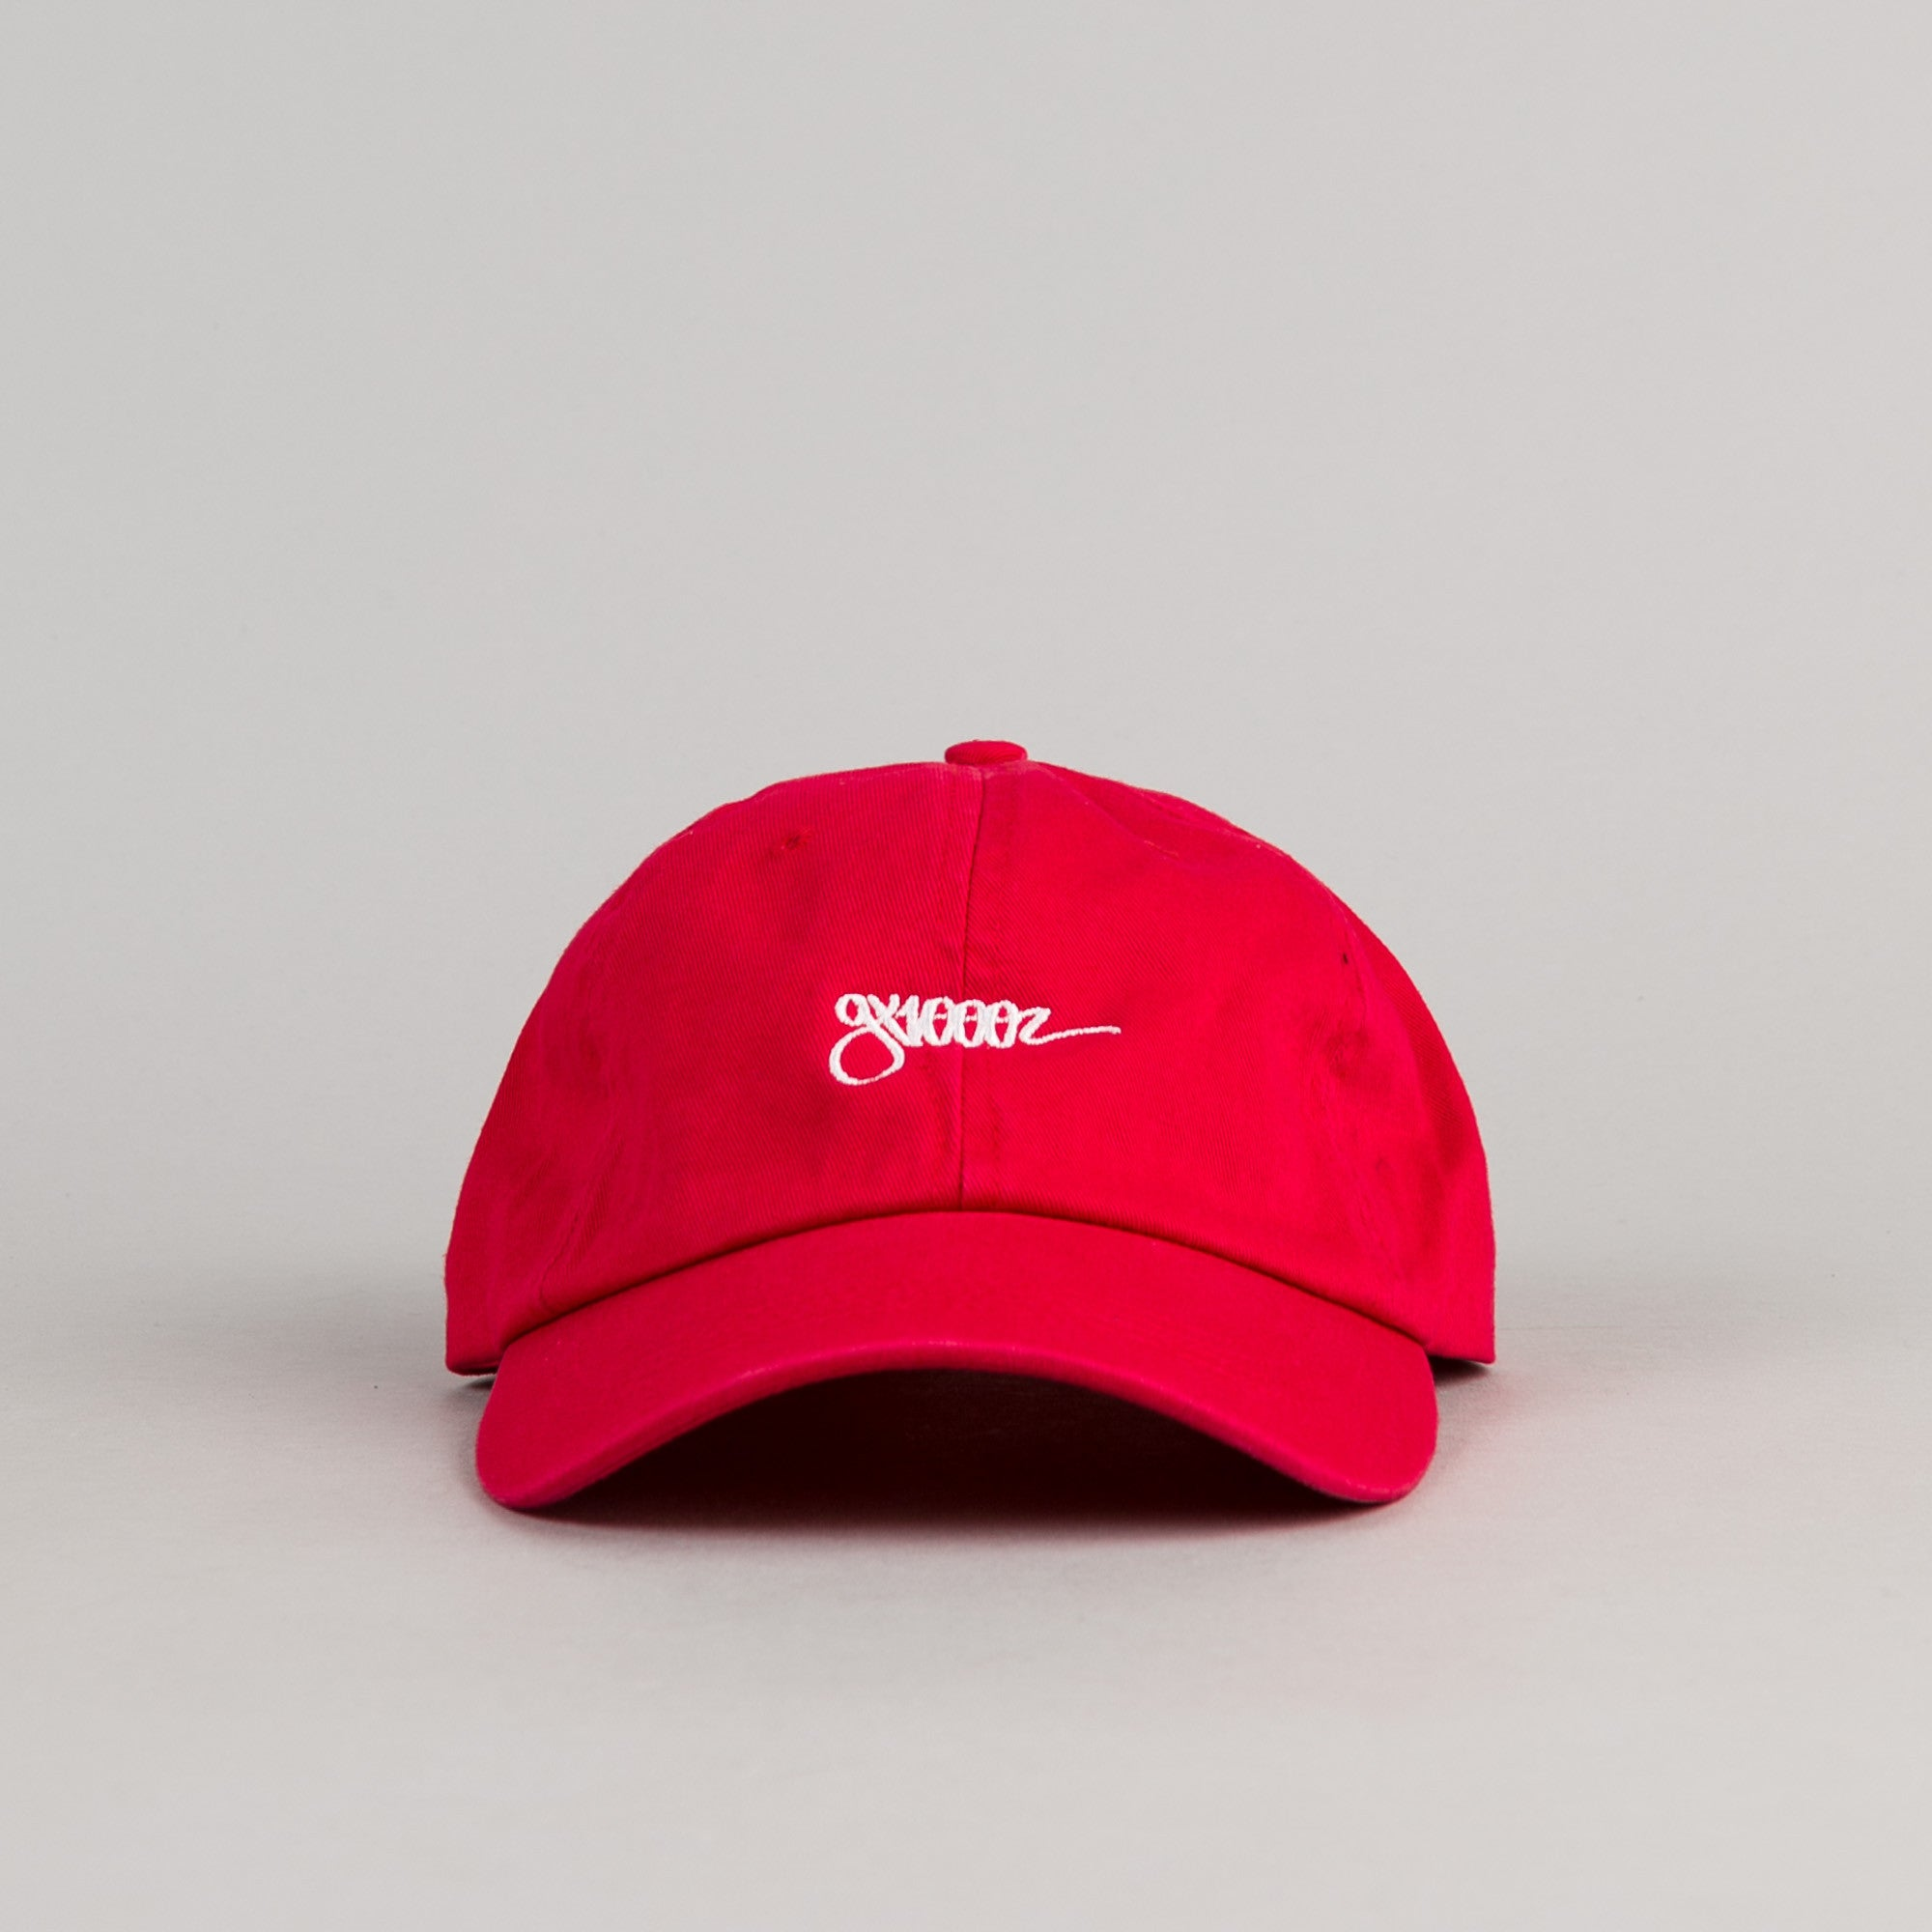 GX1000 One Liner Cap - Fire Brick